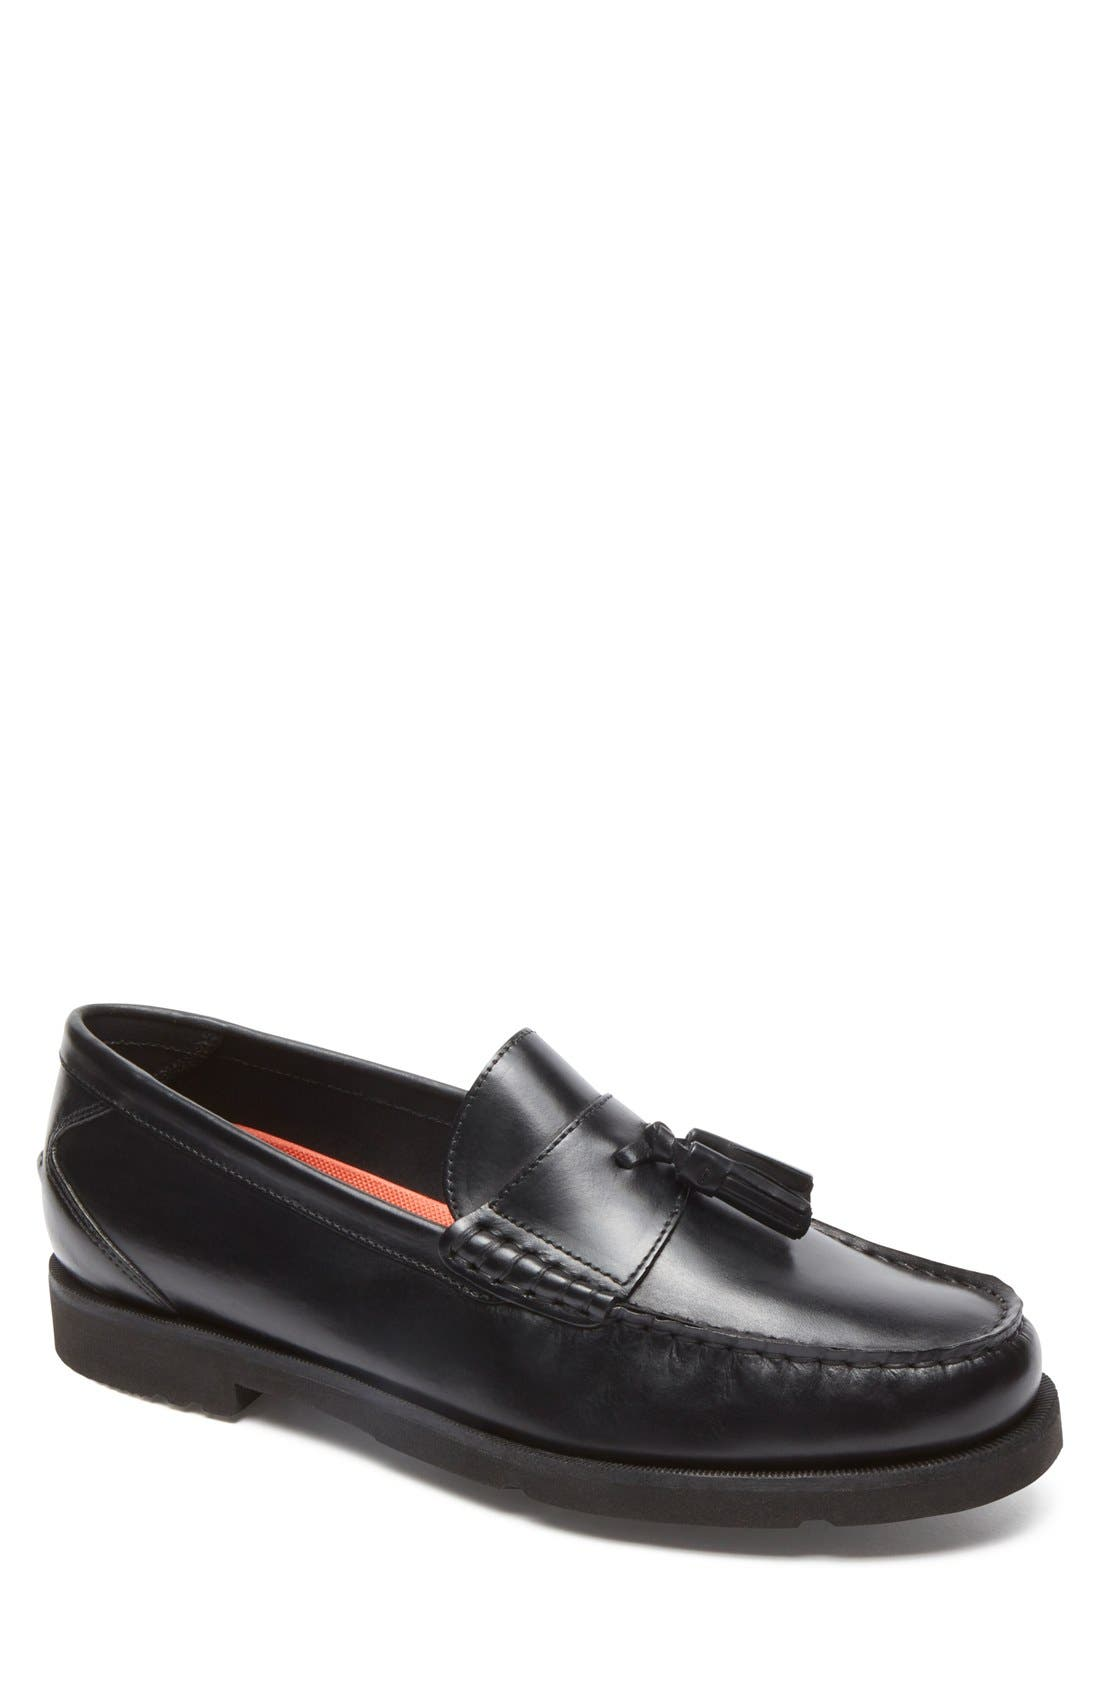 ROCKPORT,                             Modern Prep Tassel Loafer,                             Main thumbnail 1, color,                             001